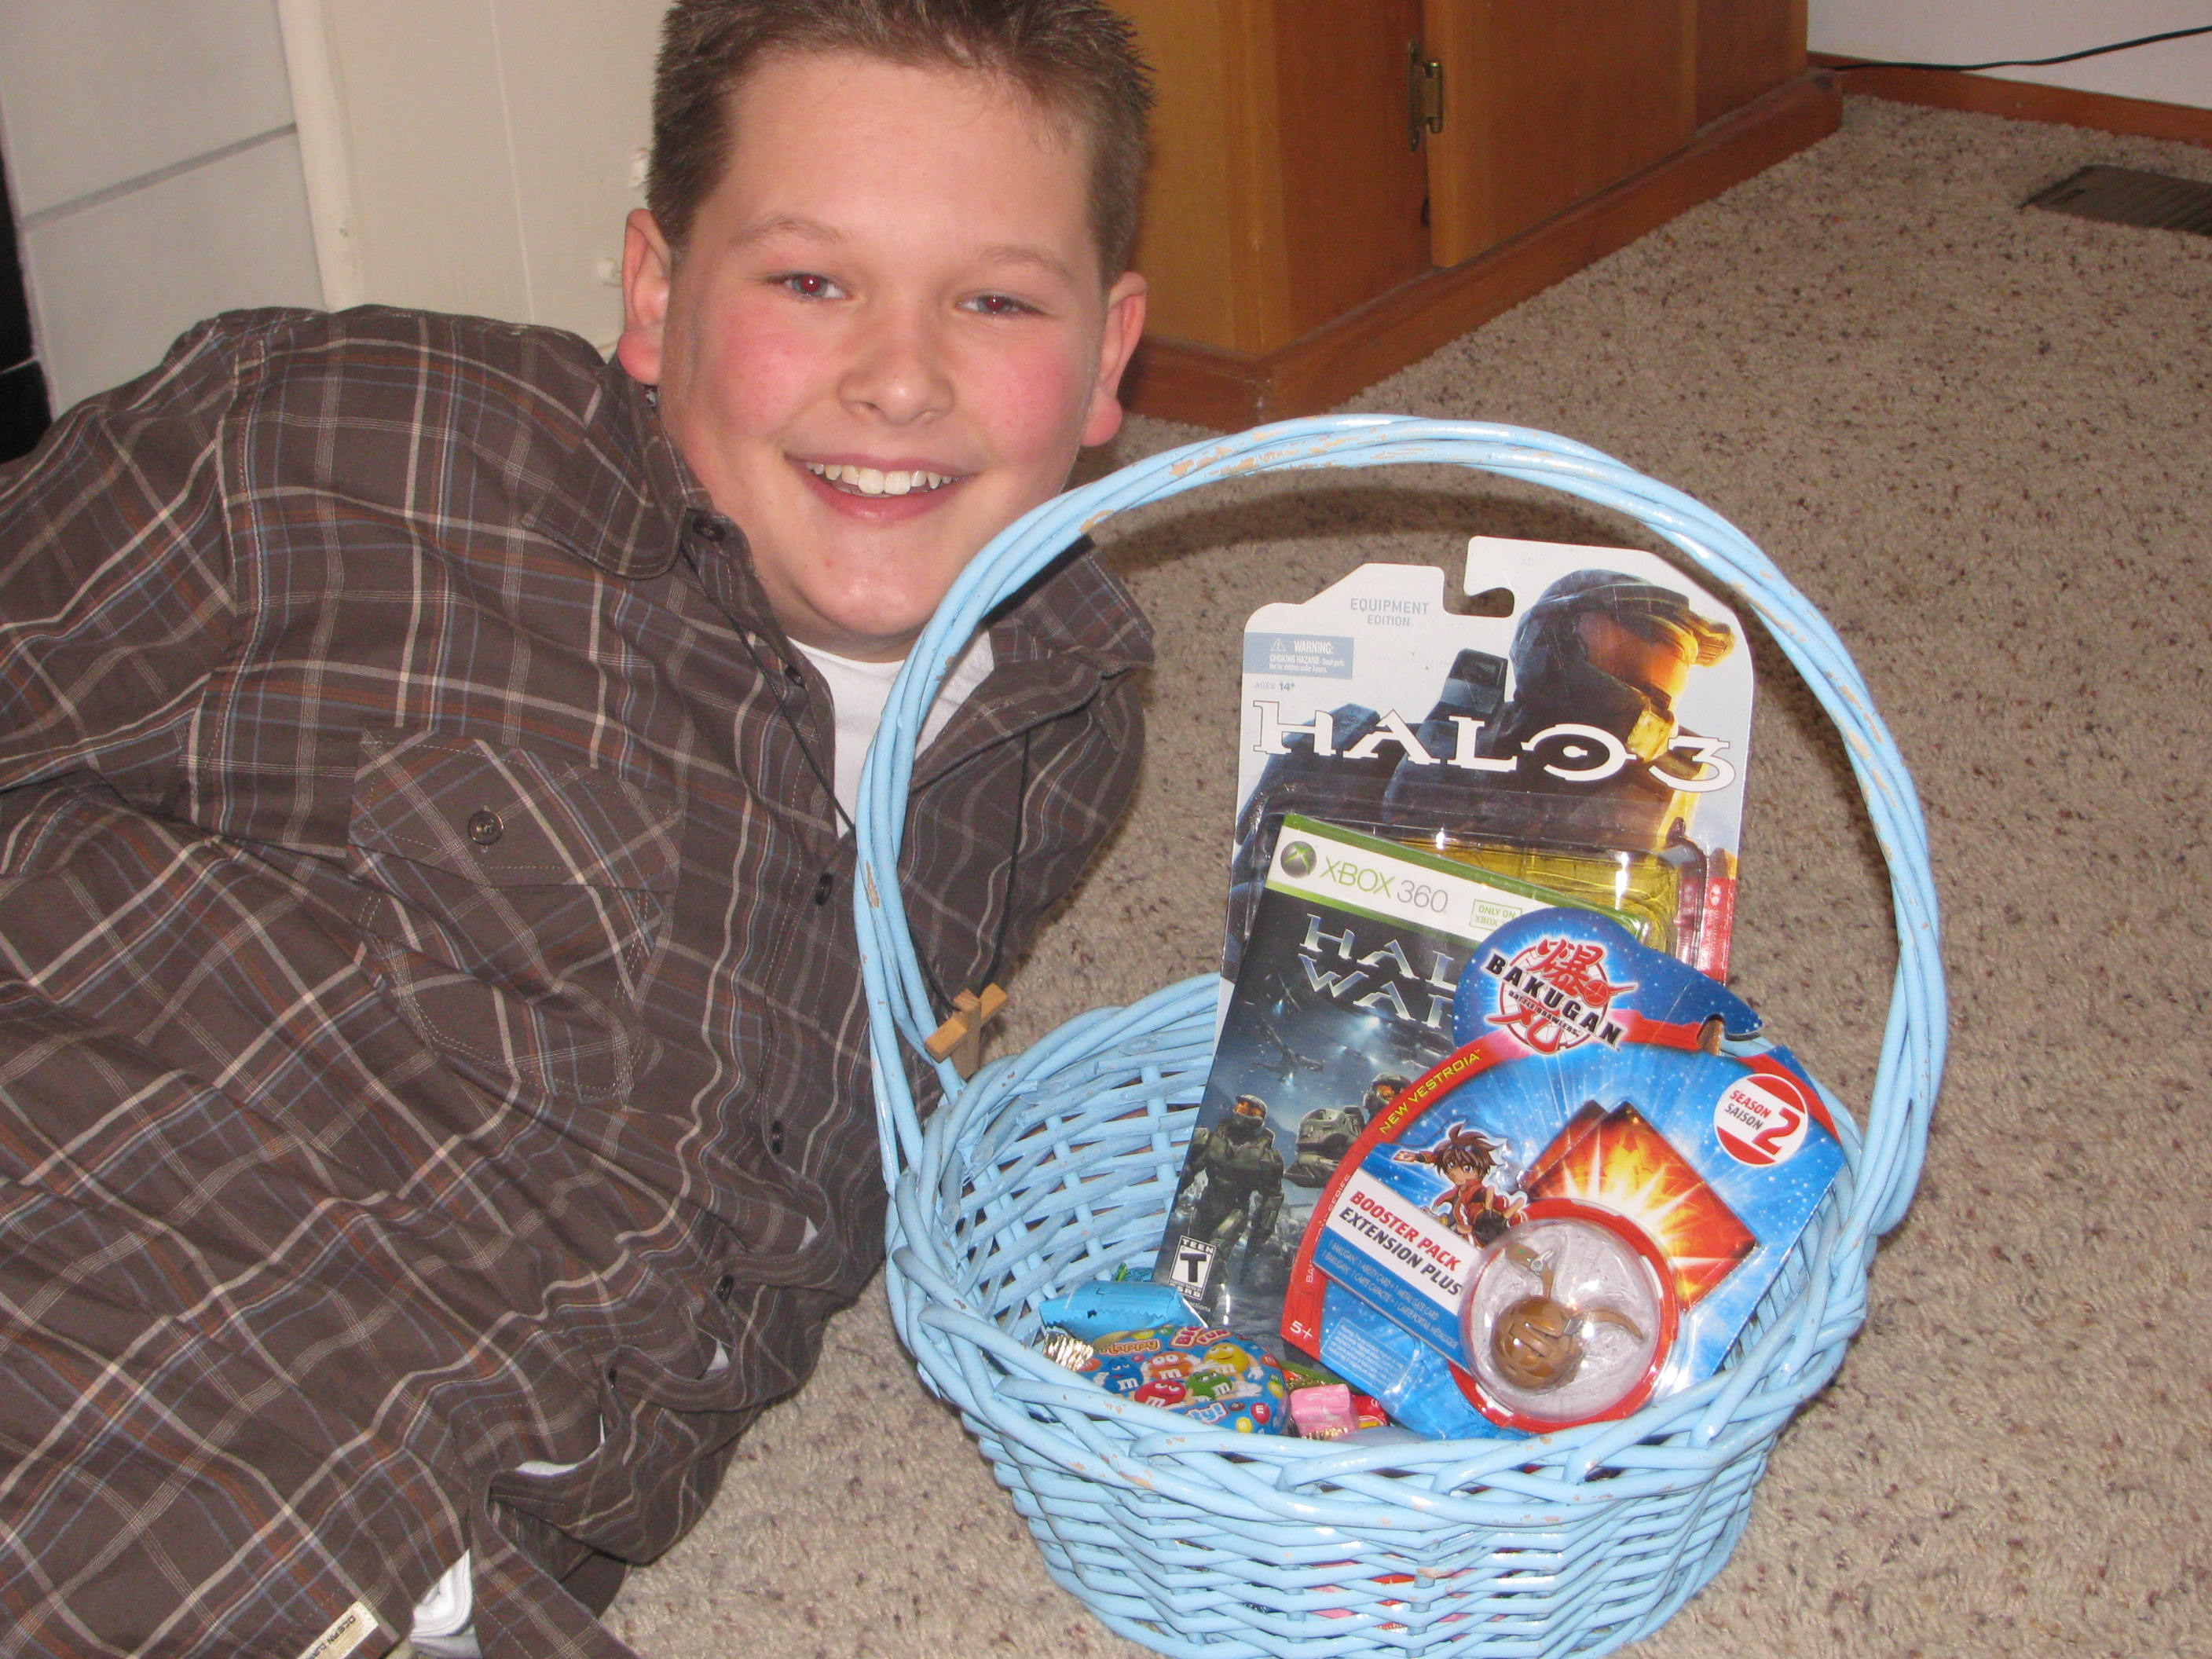 Halo Easter Basket